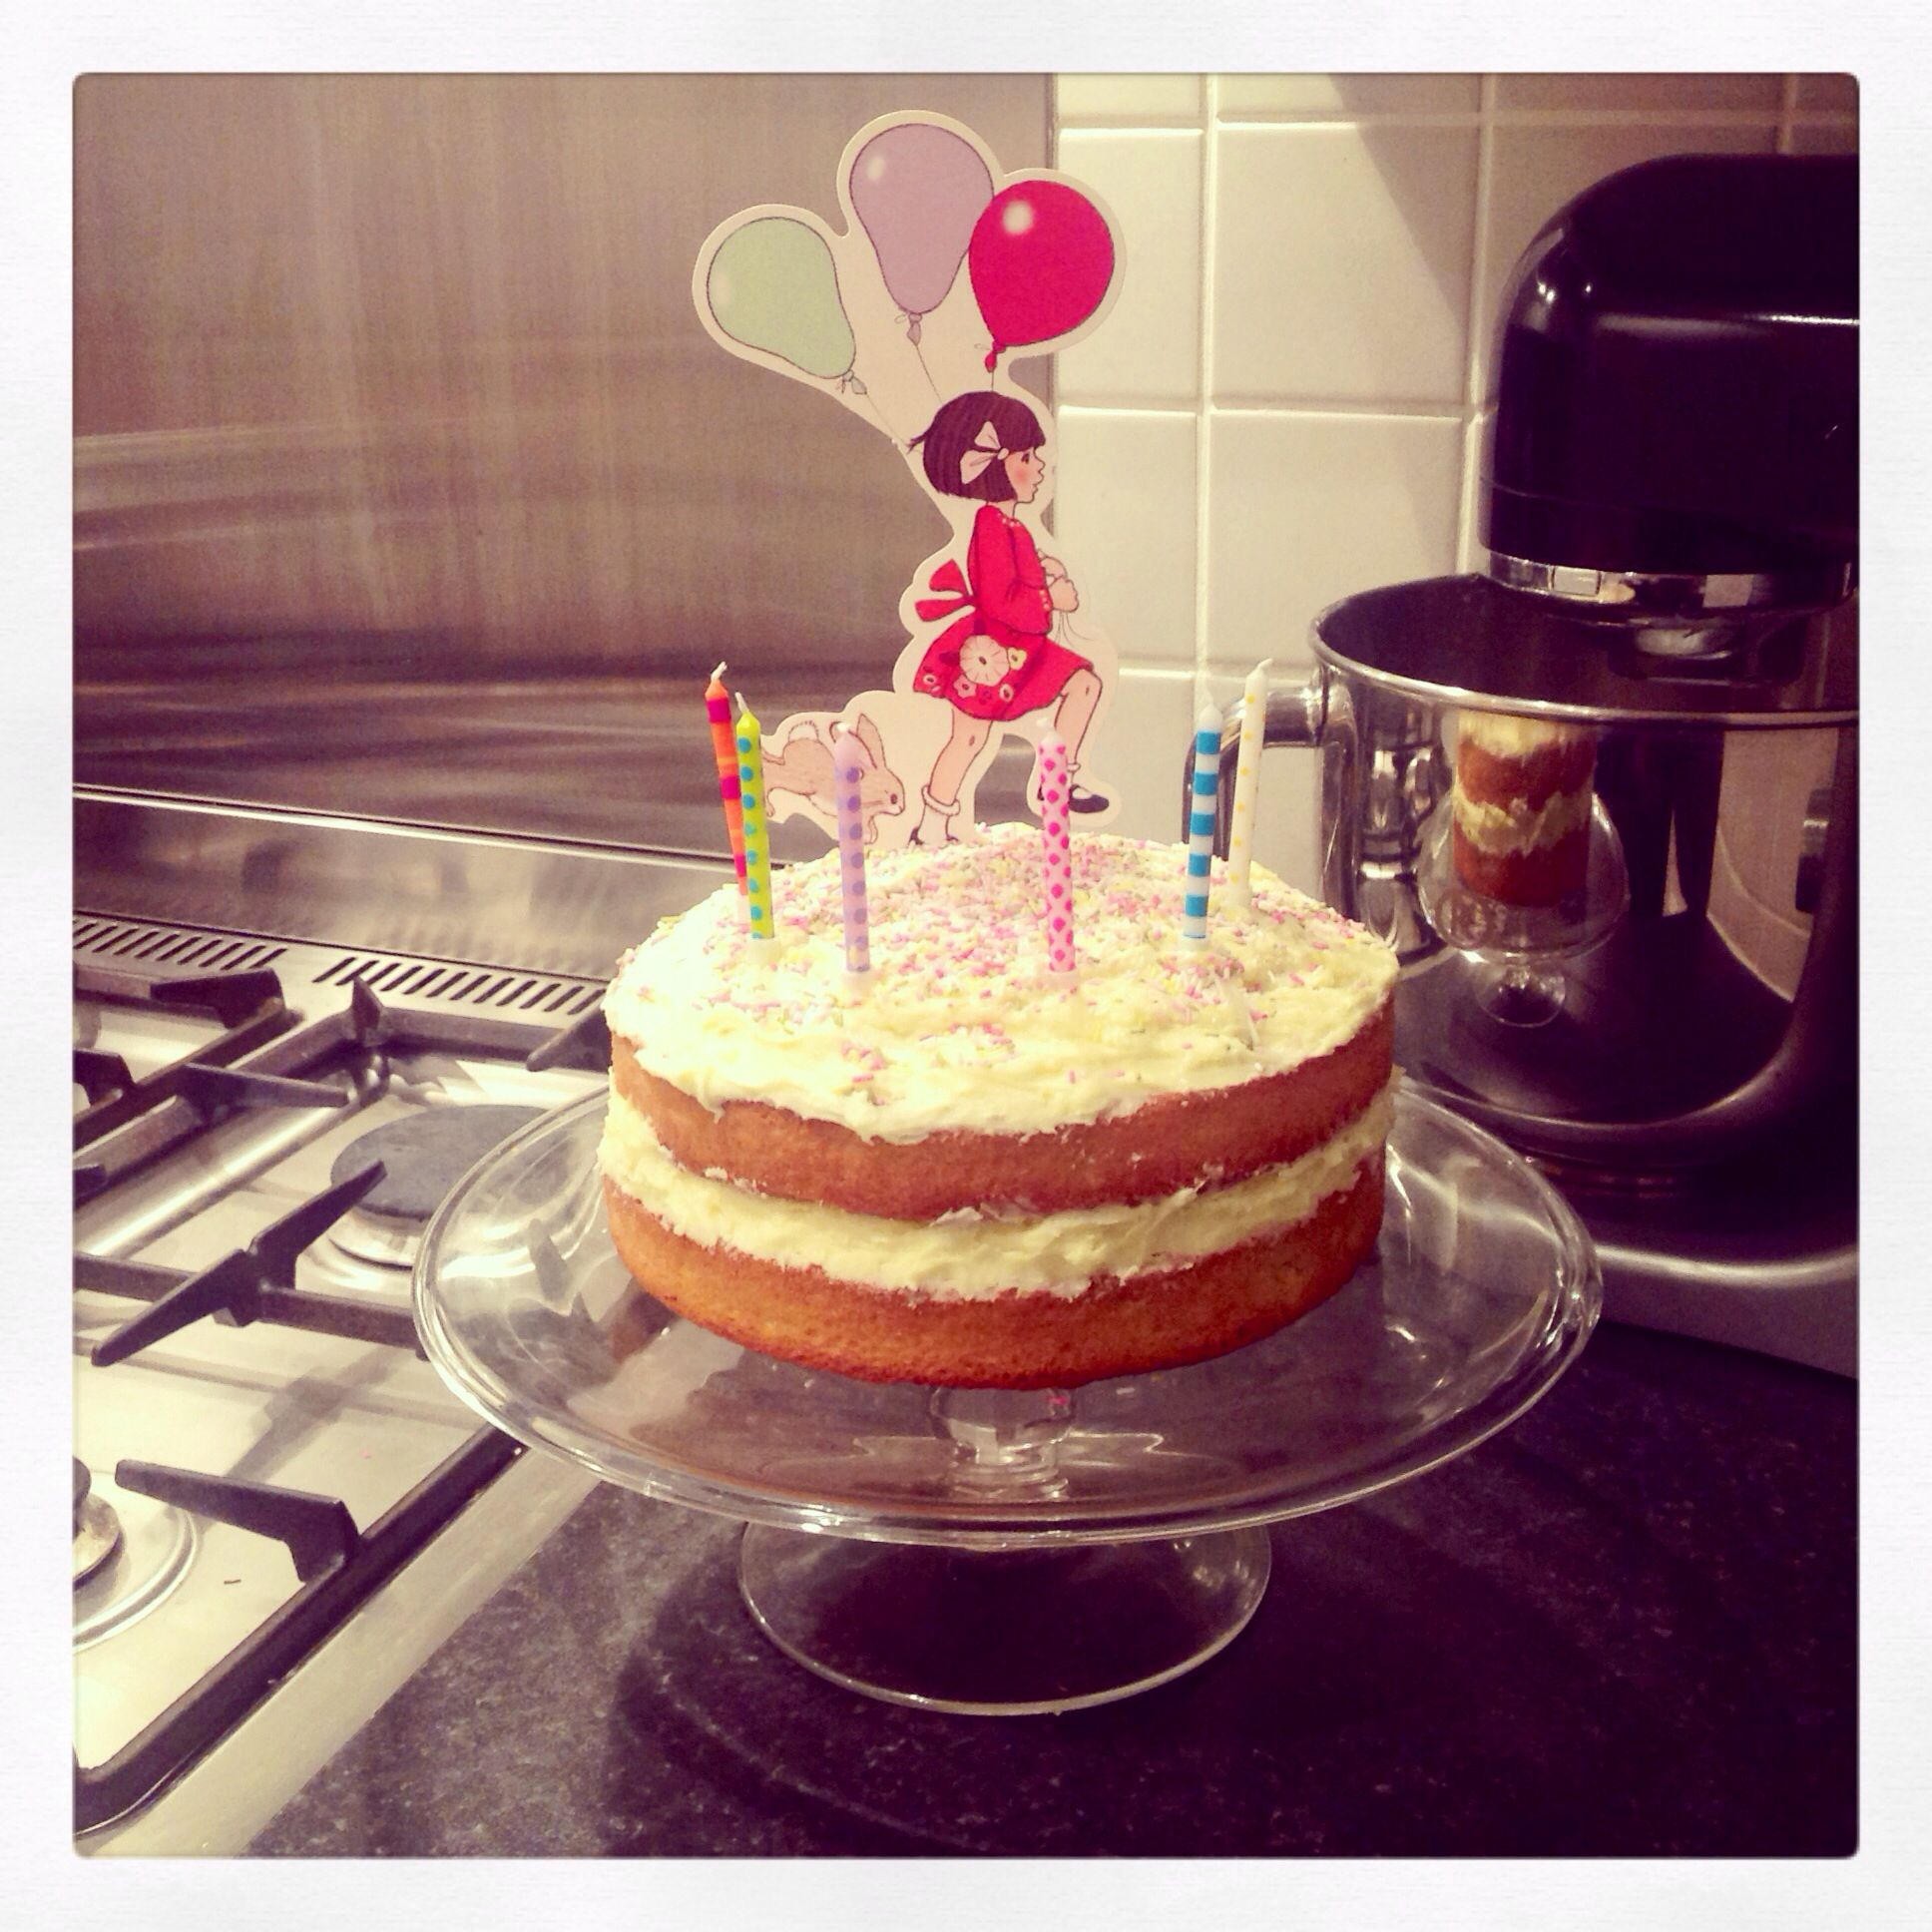 Belle and boo birthday cake that I made gracies 2nd birthday